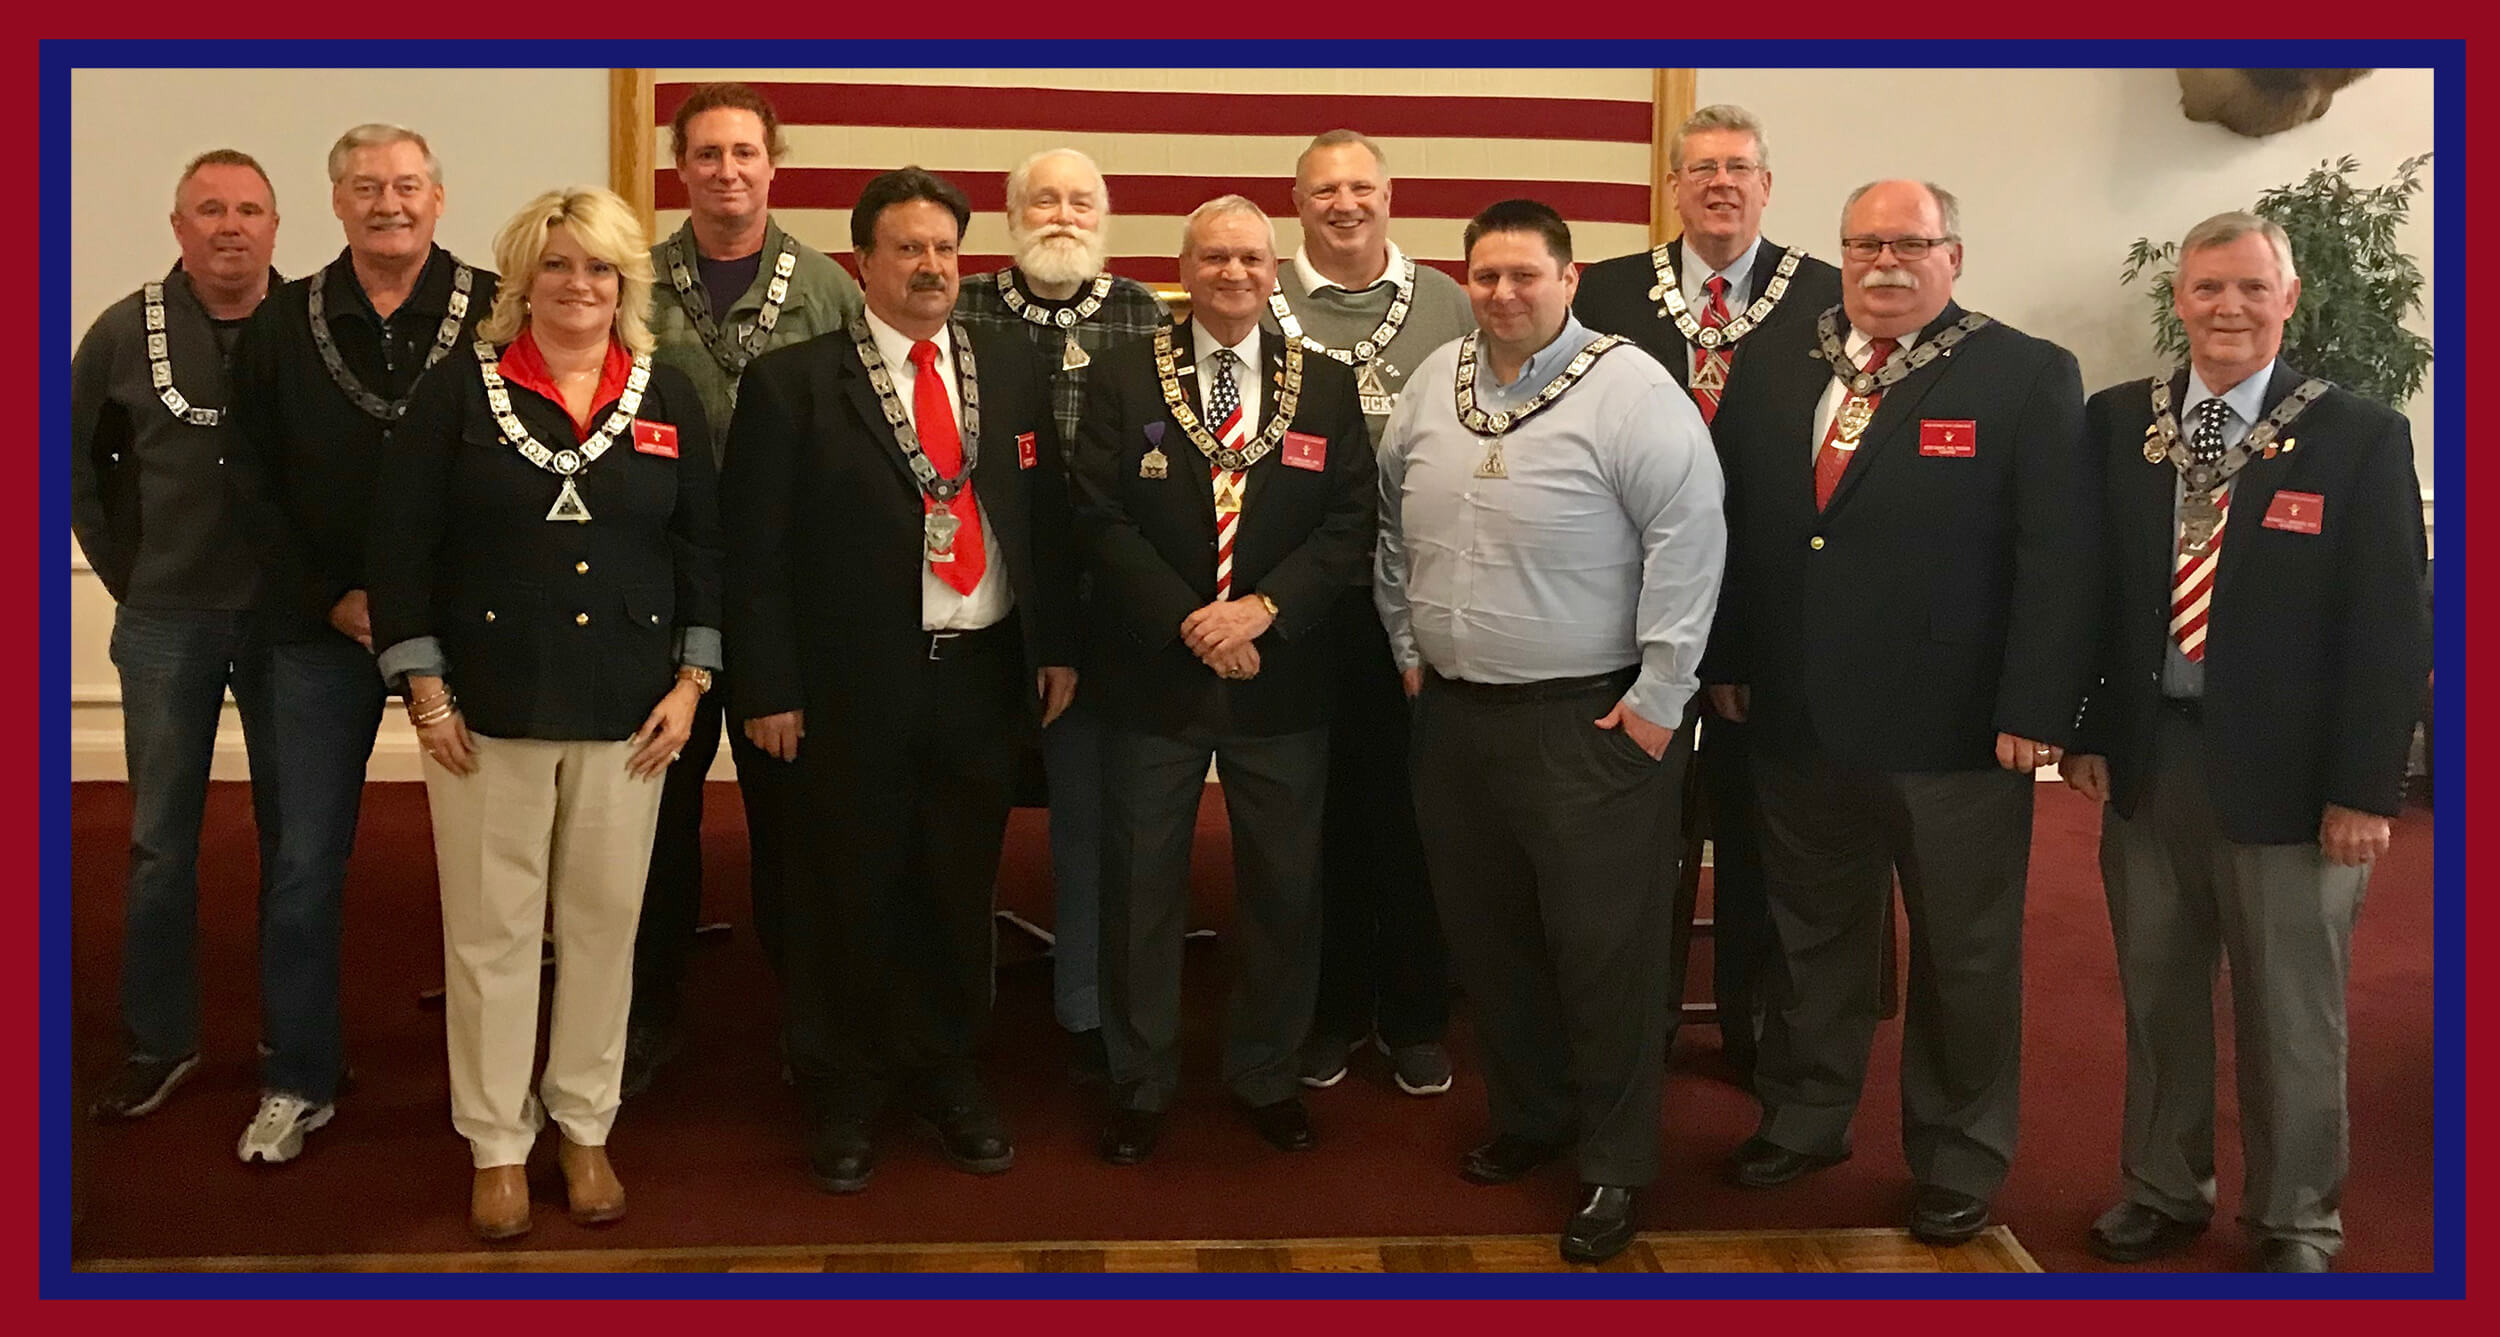 2018 - 2019 New Albany Elks Officers